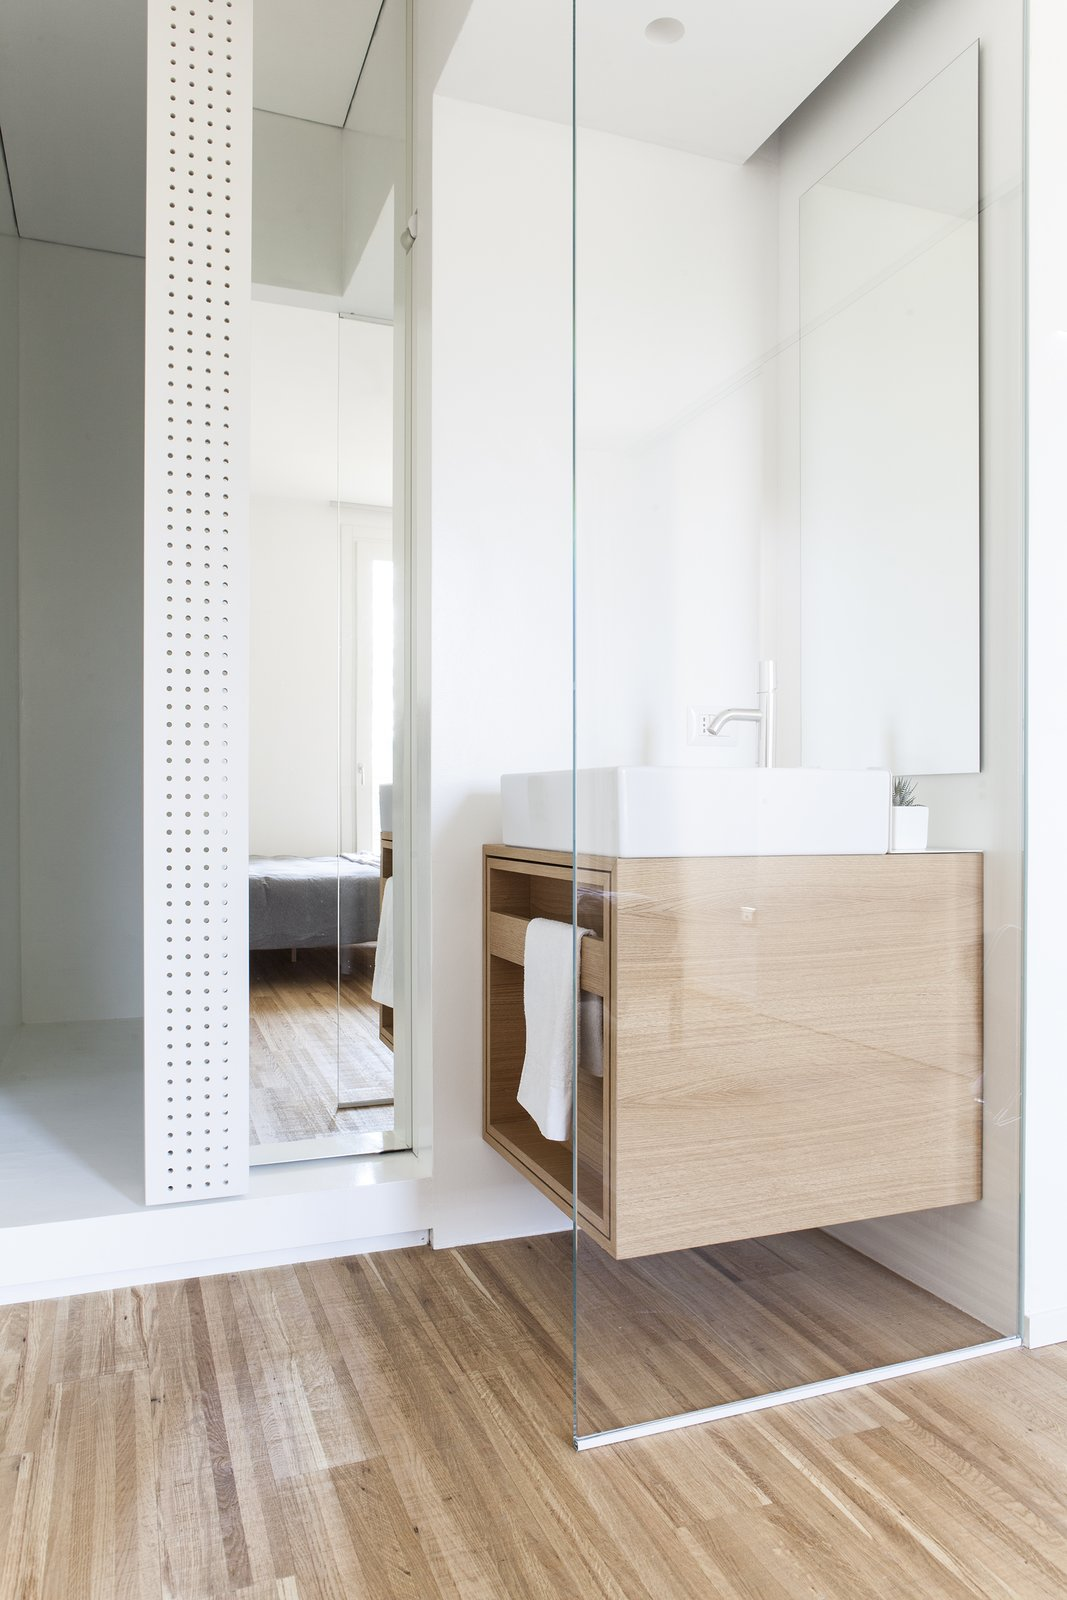 Tagged: Bath Room, Medium Hardwood Floor, Wood Counter, Vessel Sink, Full Shower, Ceiling Lighting, Concrete Wall, Wall Lighting, and One Piece Toilet.  Interior LP by Didonè Comacchio